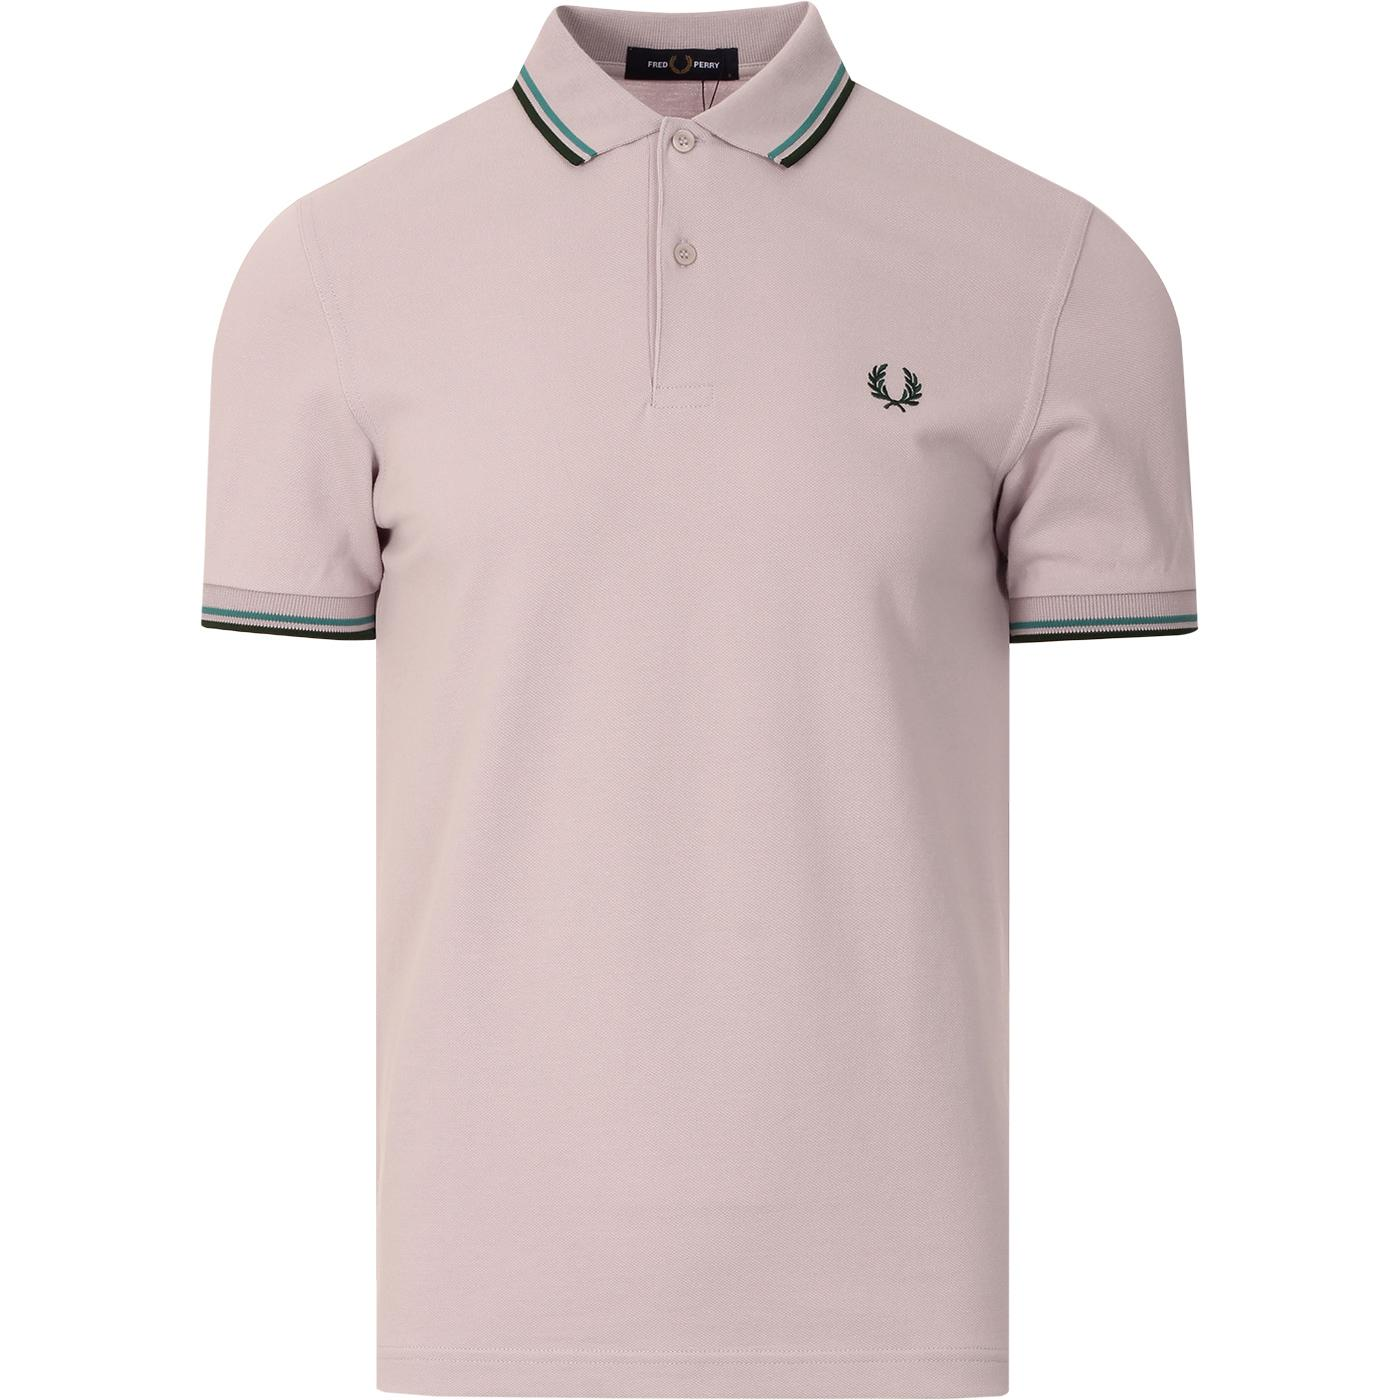 FRED PERRY M3600 Men's Twin Tipped Pique Polo RAIN